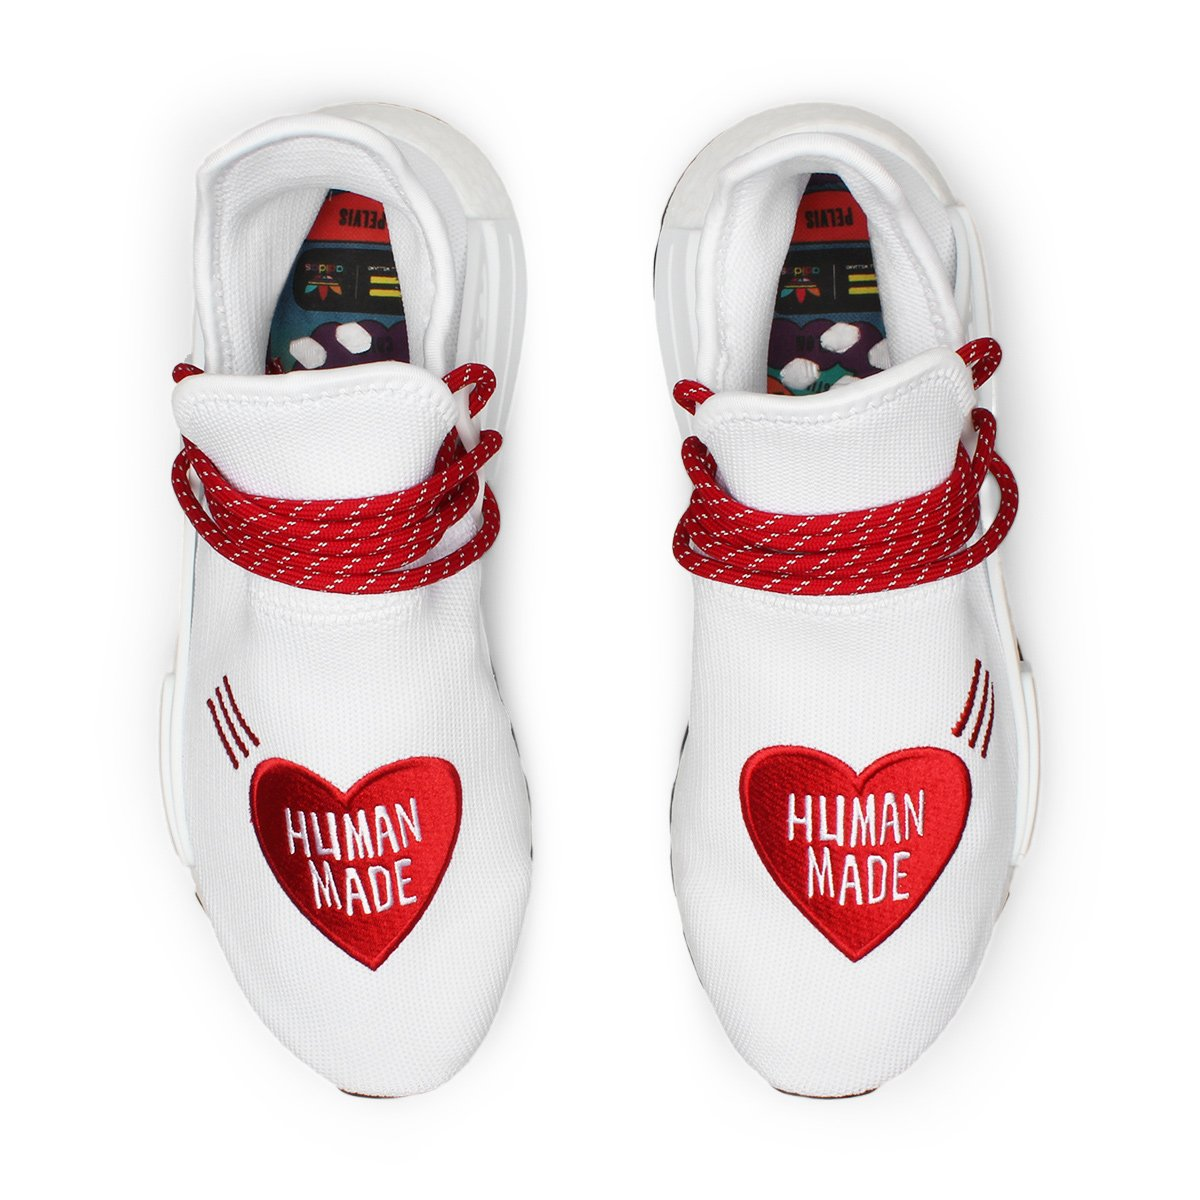 all human race shoes